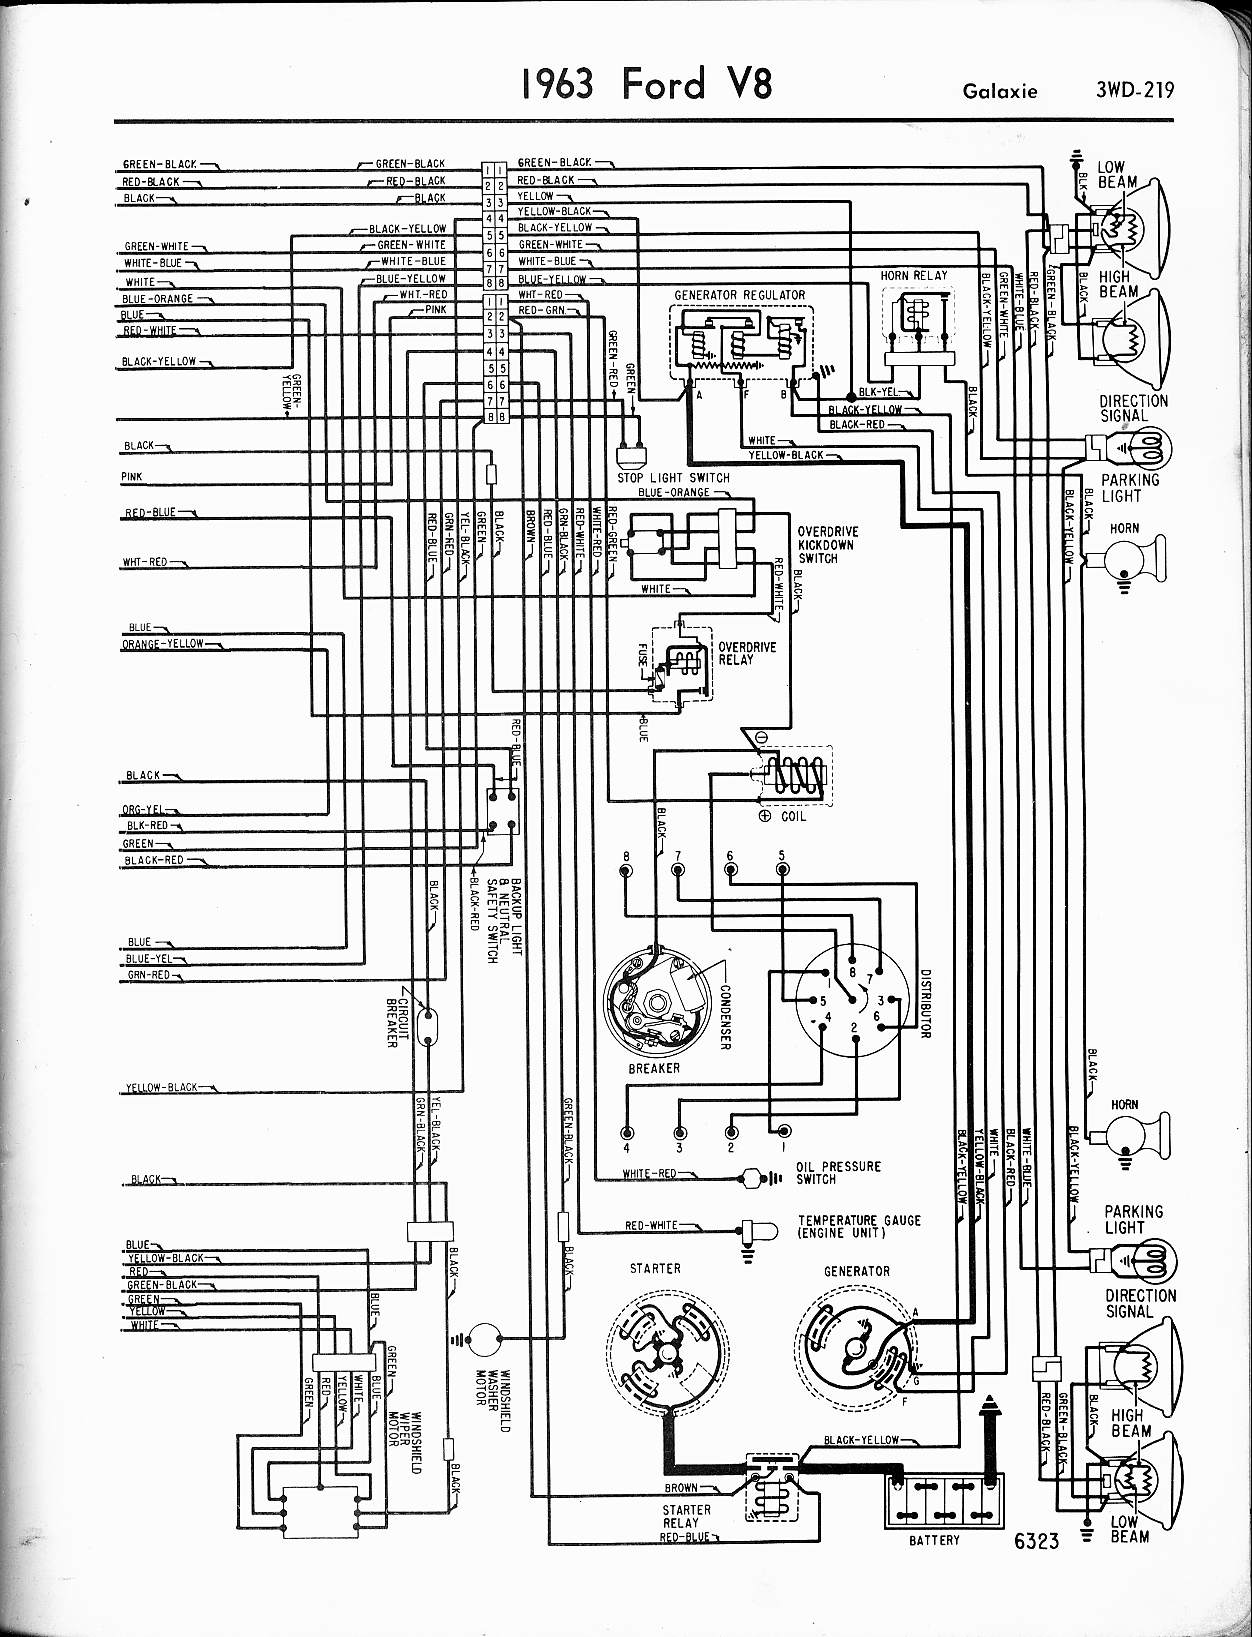 Volt Regulator Wiring Diagram Ford Fairlane Diy Enthusiasts Pinto Ignition 57 65 Diagrams Rh Oldcarmanualproject Com